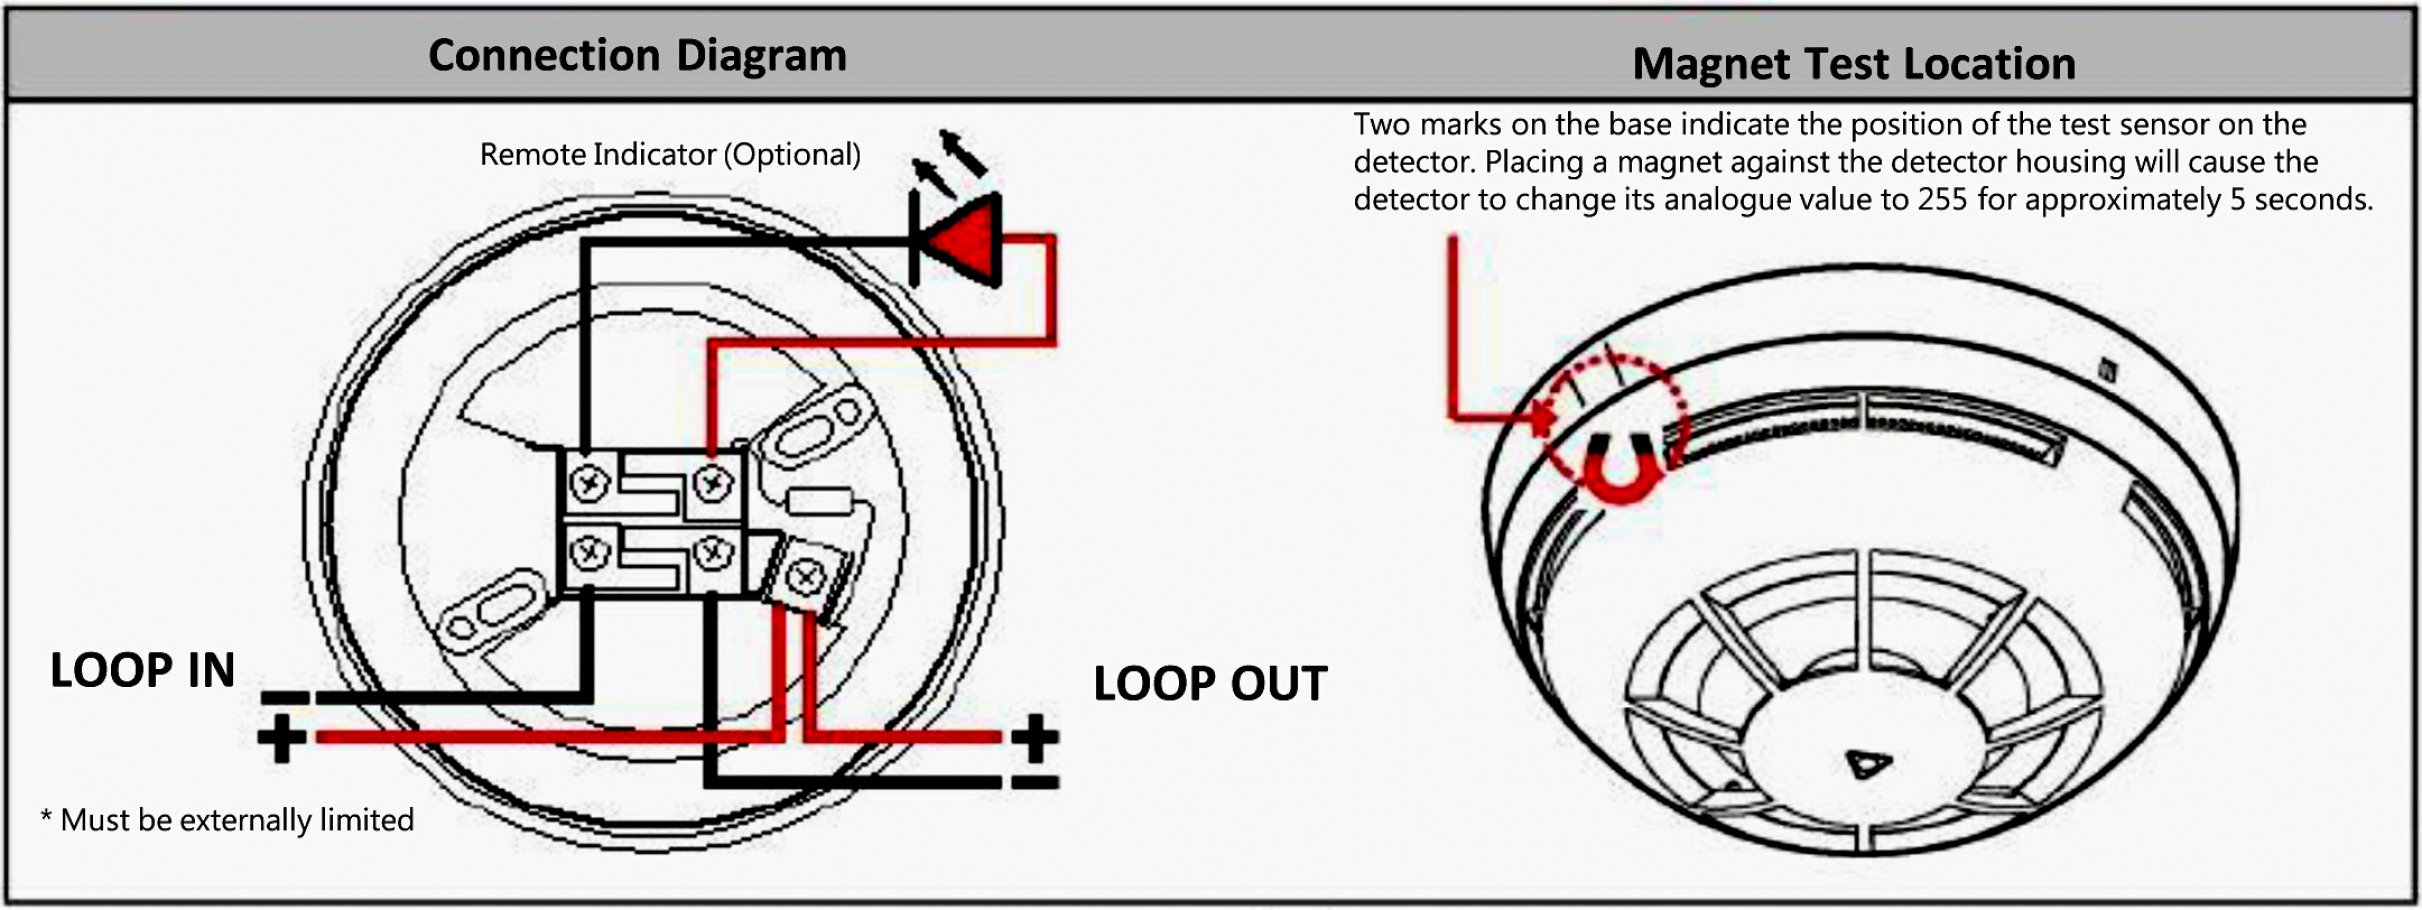 Nest Fire Alarm Wiring Diagram